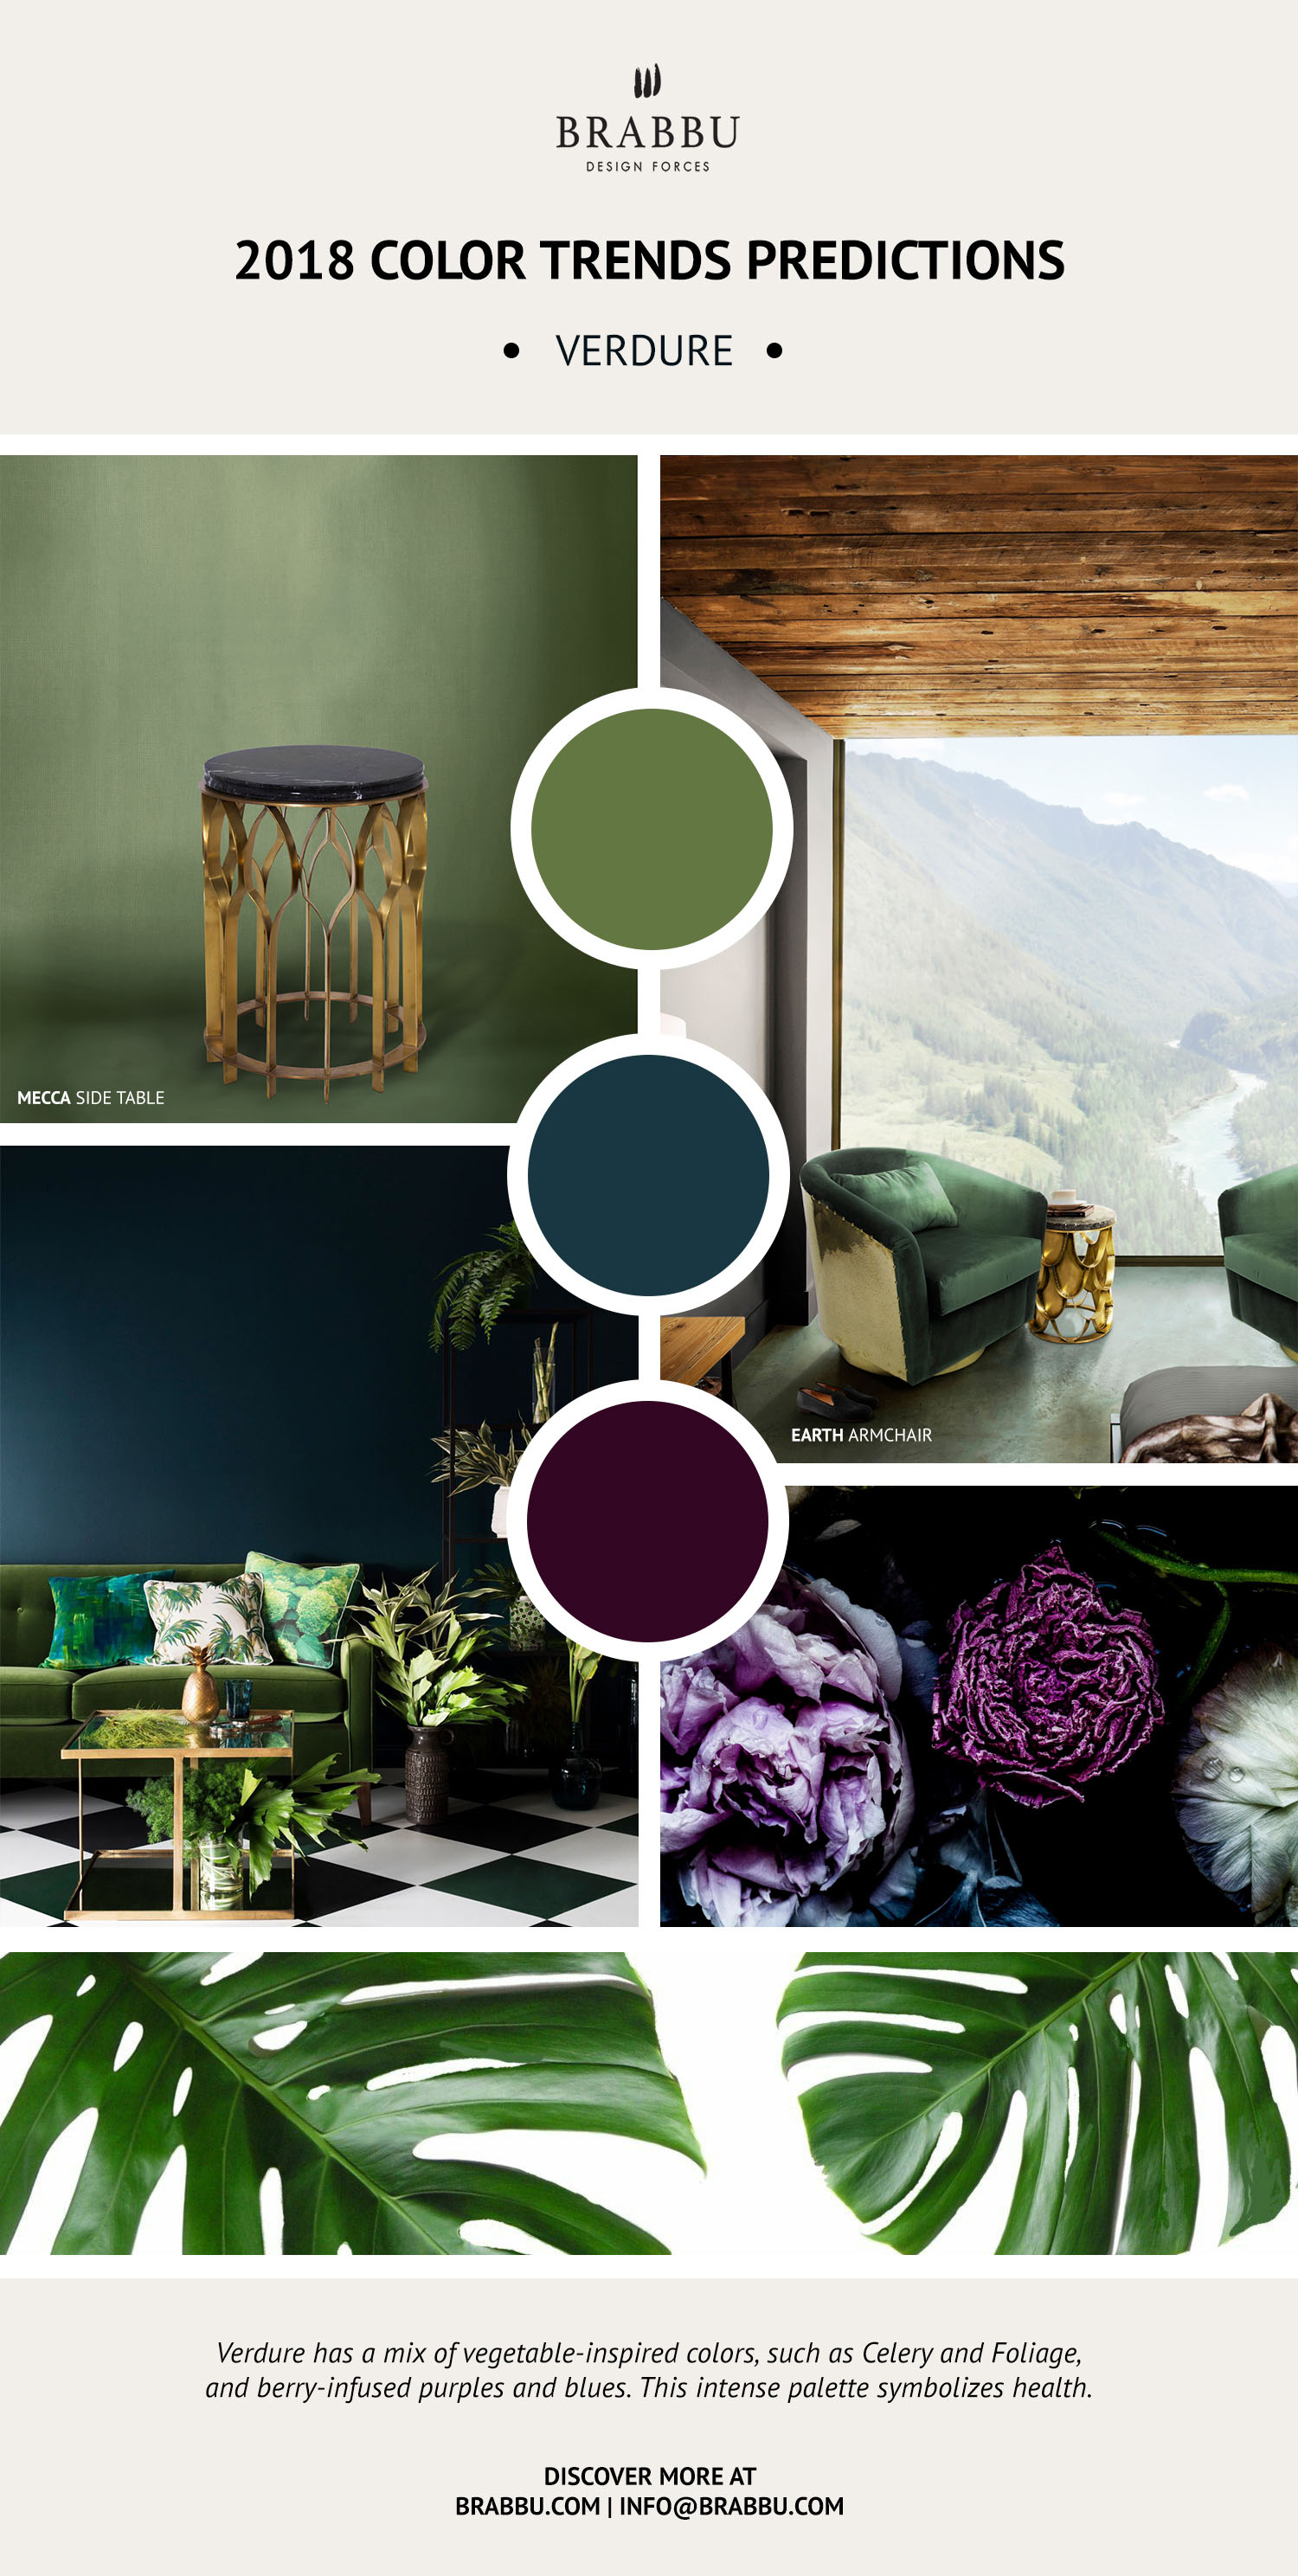 Pantone Color Trend Predictions For 2018 color trend Pantone Color Trend Predictions For 2018 1 1 modern Rugs design Incredible Spring Color Ideas for modern Rugs design 1 1